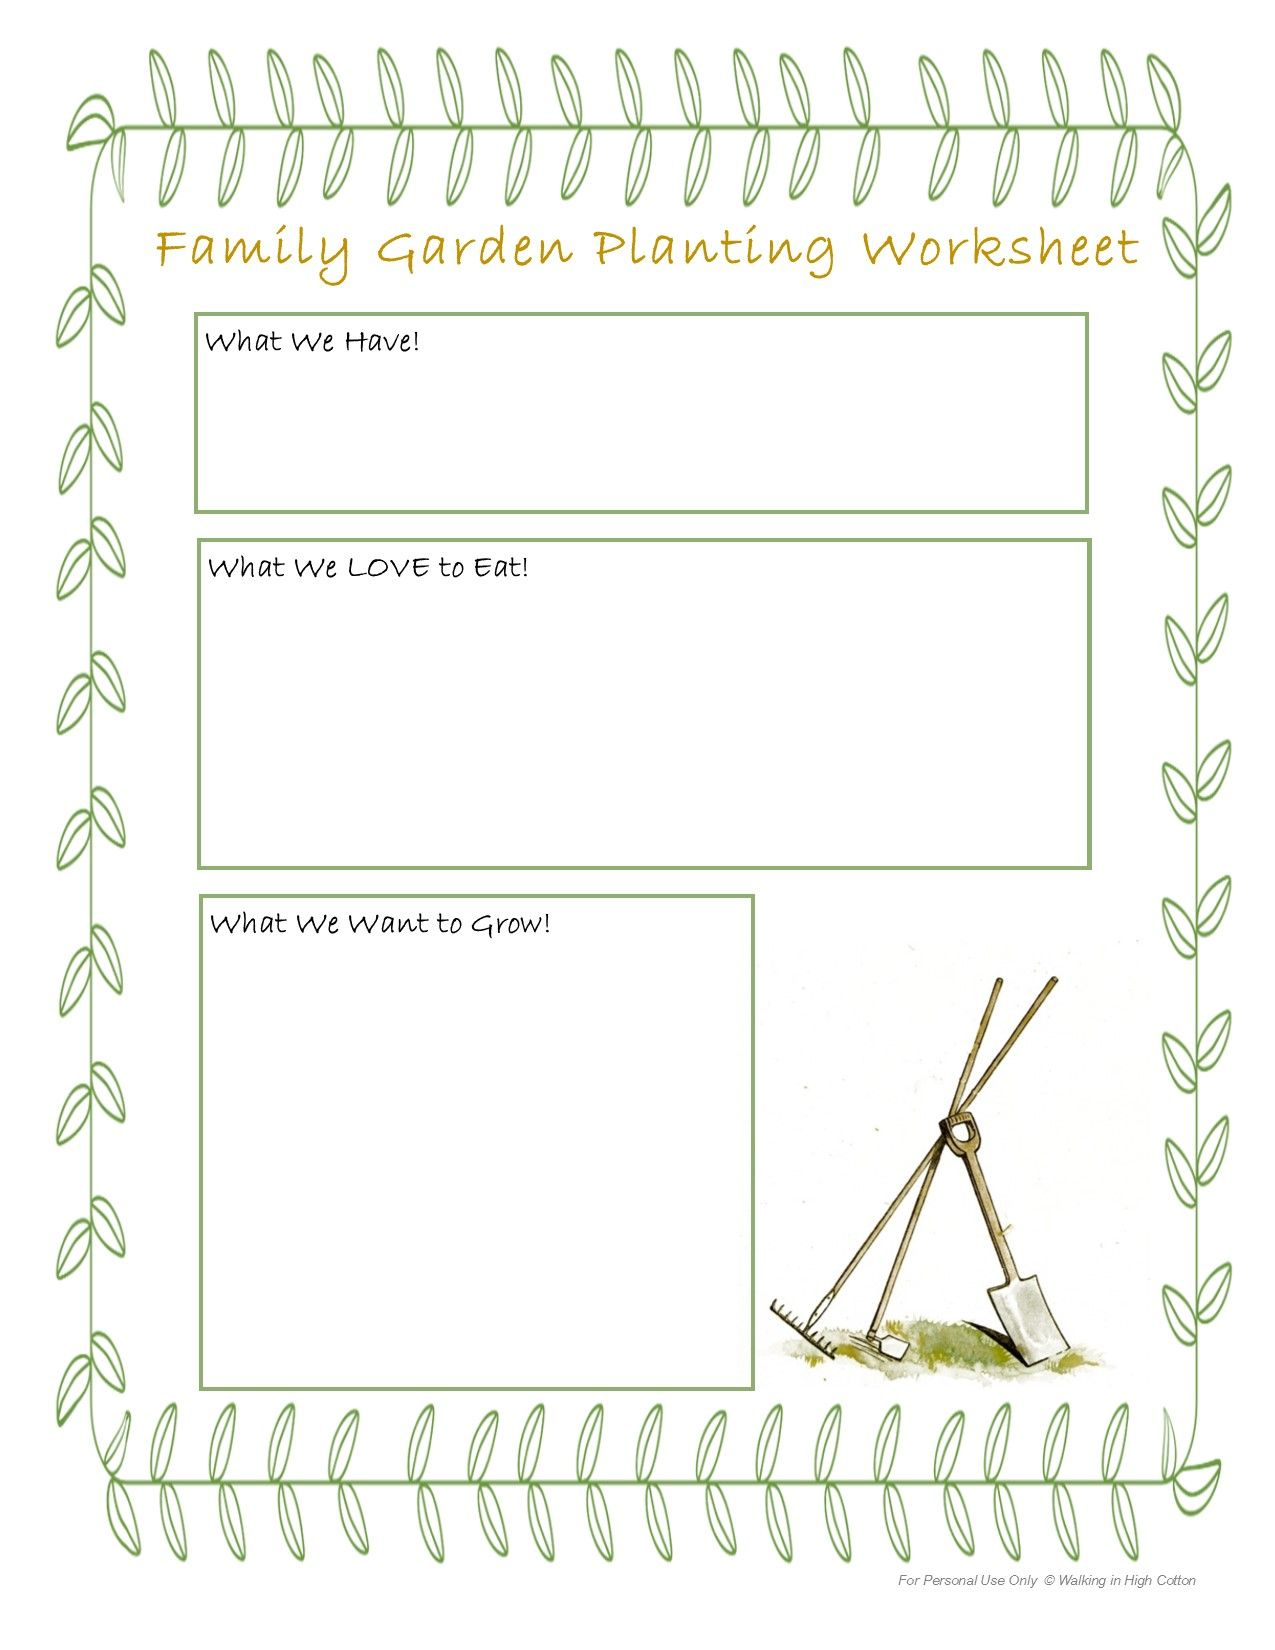 Letting Kids Be Involved In Every Step Of Gardening Walking In High Cotton Family Garden Plants Worksheets Gardening For Kids